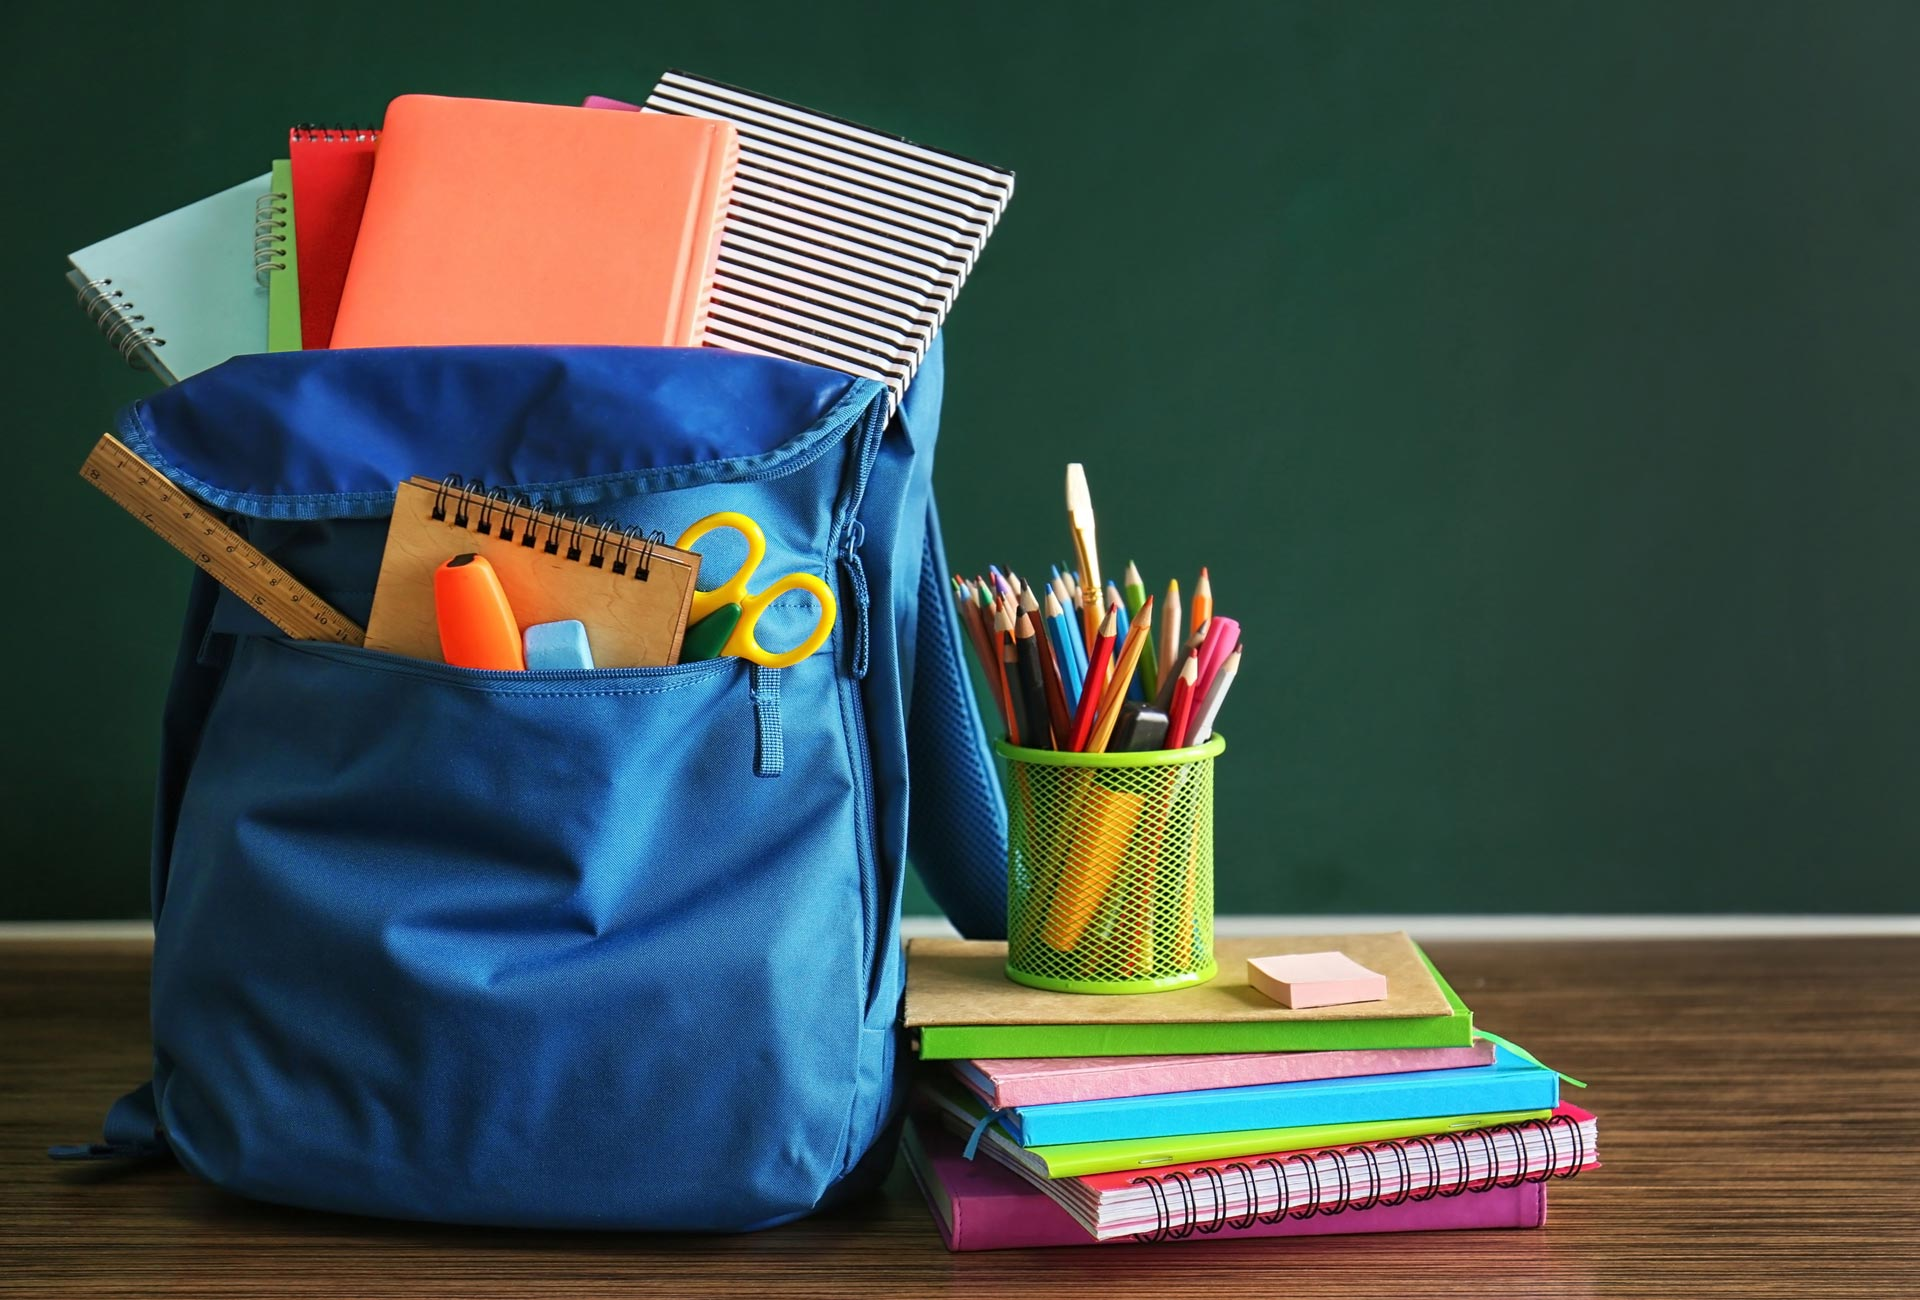 Blue backpack with school supplies stuffed in it